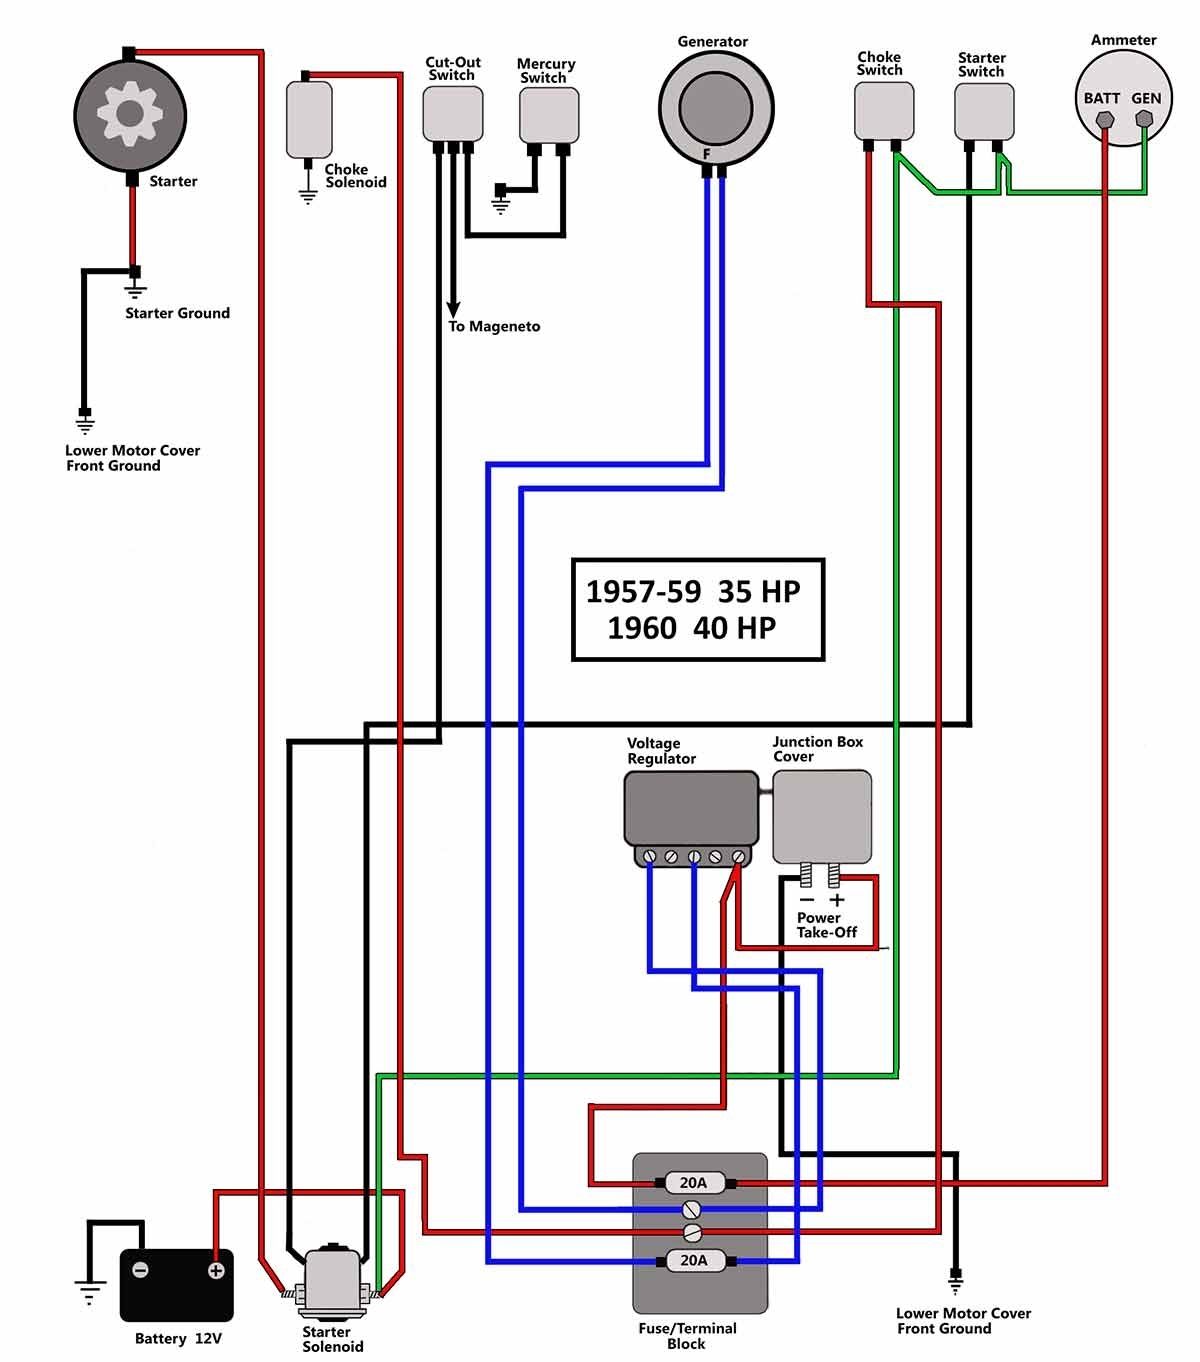 vdo gauges wiring diagrams and boat tach diagram e z go golf cart for boat gauge wiring diagram for tachometer vdo wiring diagram diagram vdo wiring siemens 5wk9628 \u2022 free golf cart battery meter wiring diagram at crackthecode.co